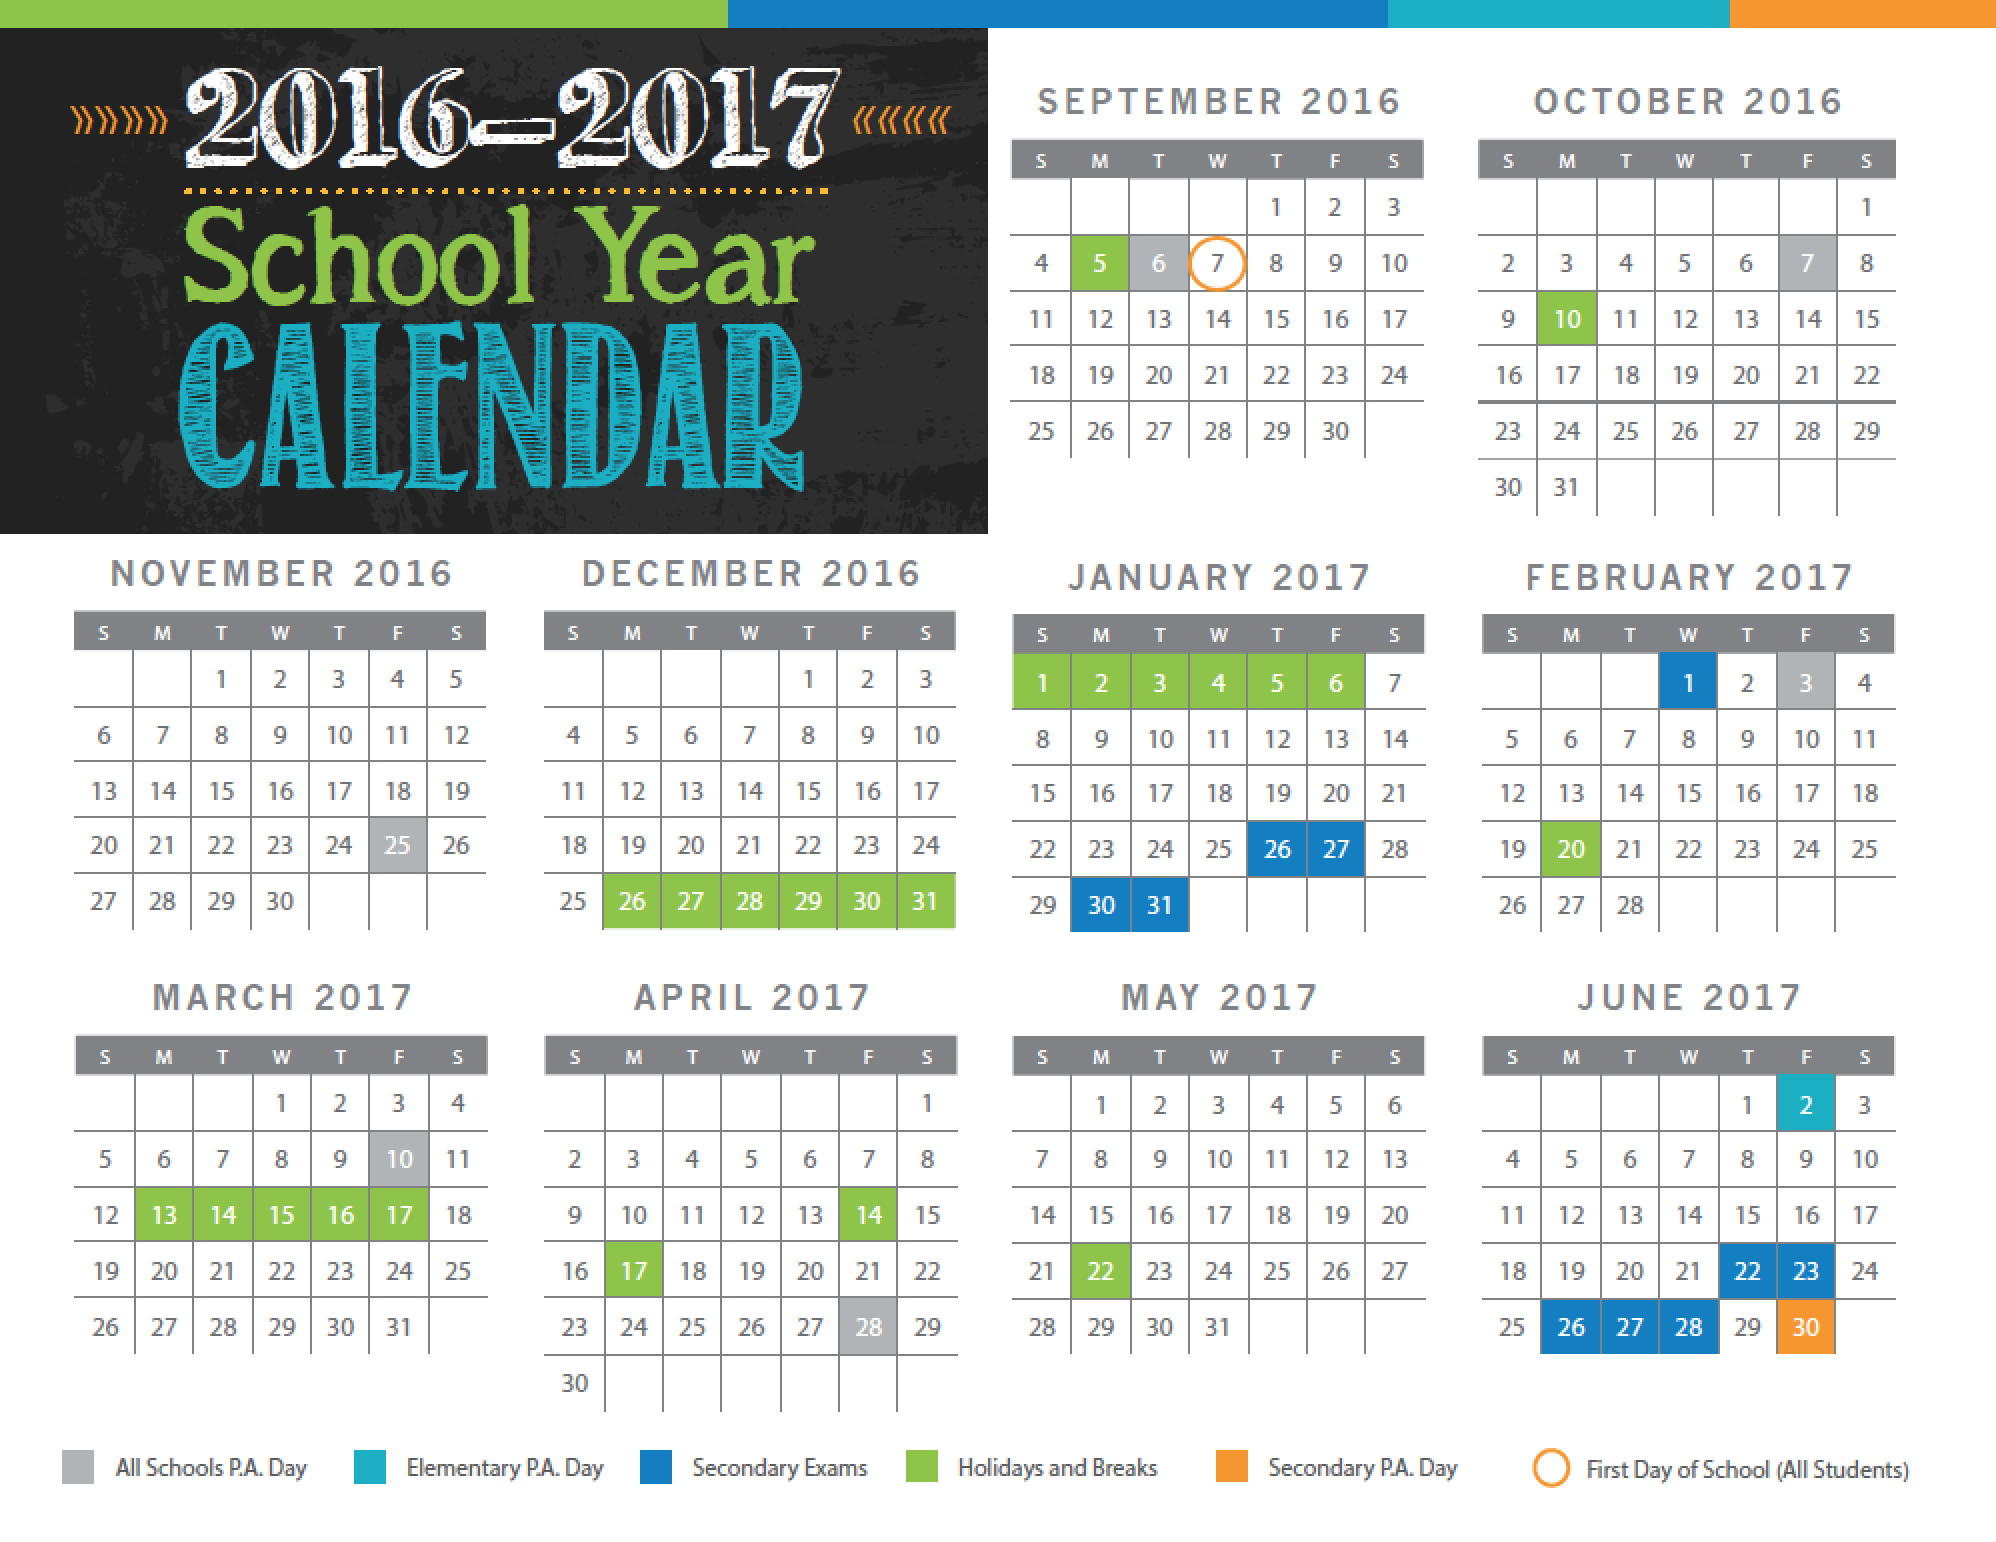 Calendar approval sets school